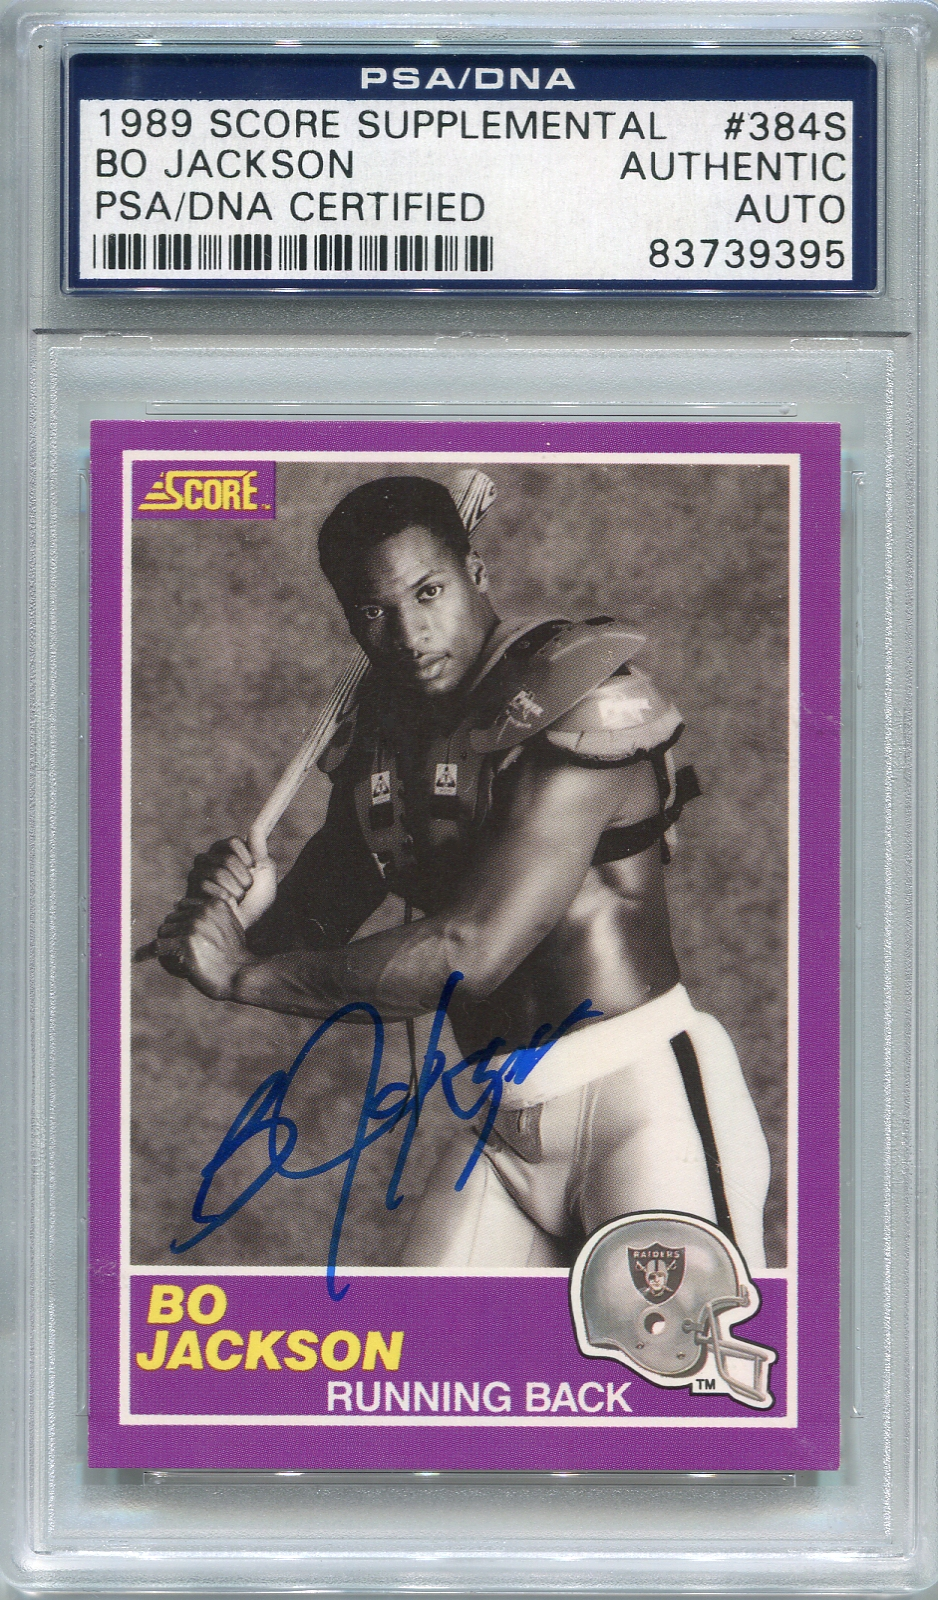 Bo Jackson PSA/DNA Certified Authentic Autograph - 1989 Score Supplemental